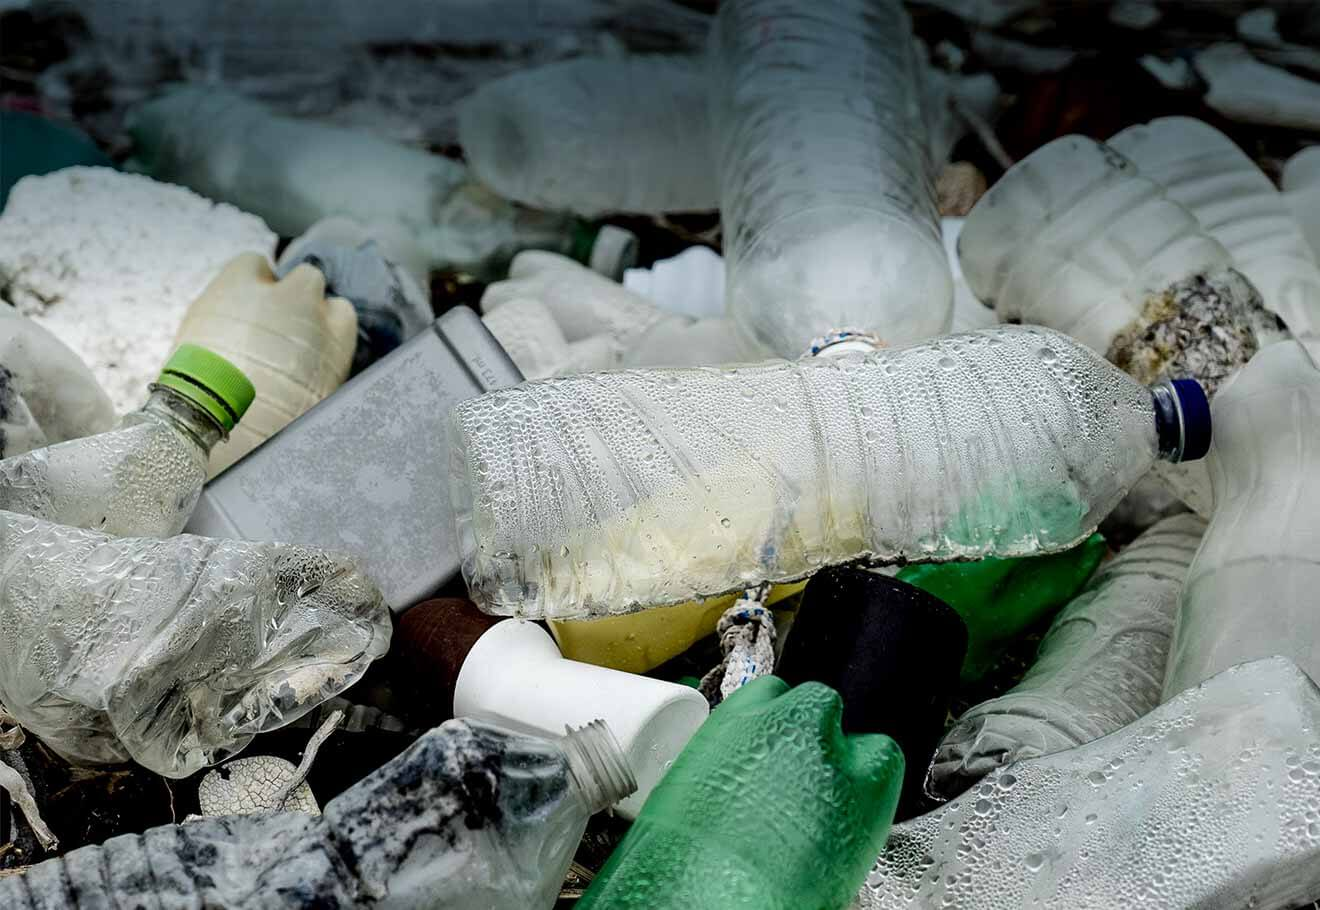 PET bottles washed up on a beach